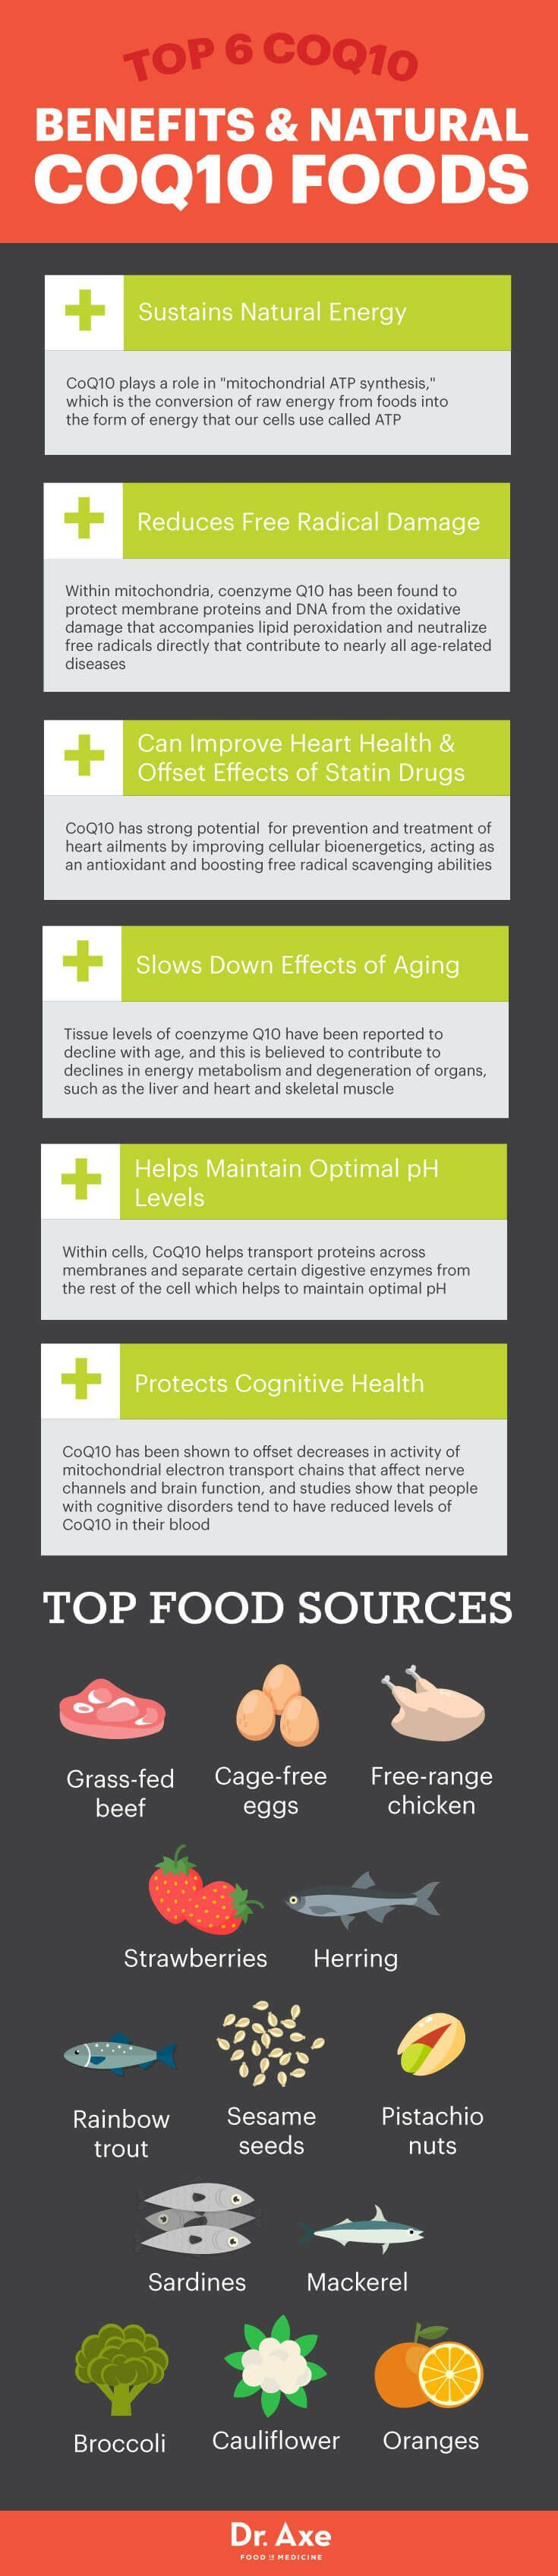 All About CoQ10 Benefits, CoQ10 Foods & CoQ10 Side Effects - Dr. Axe